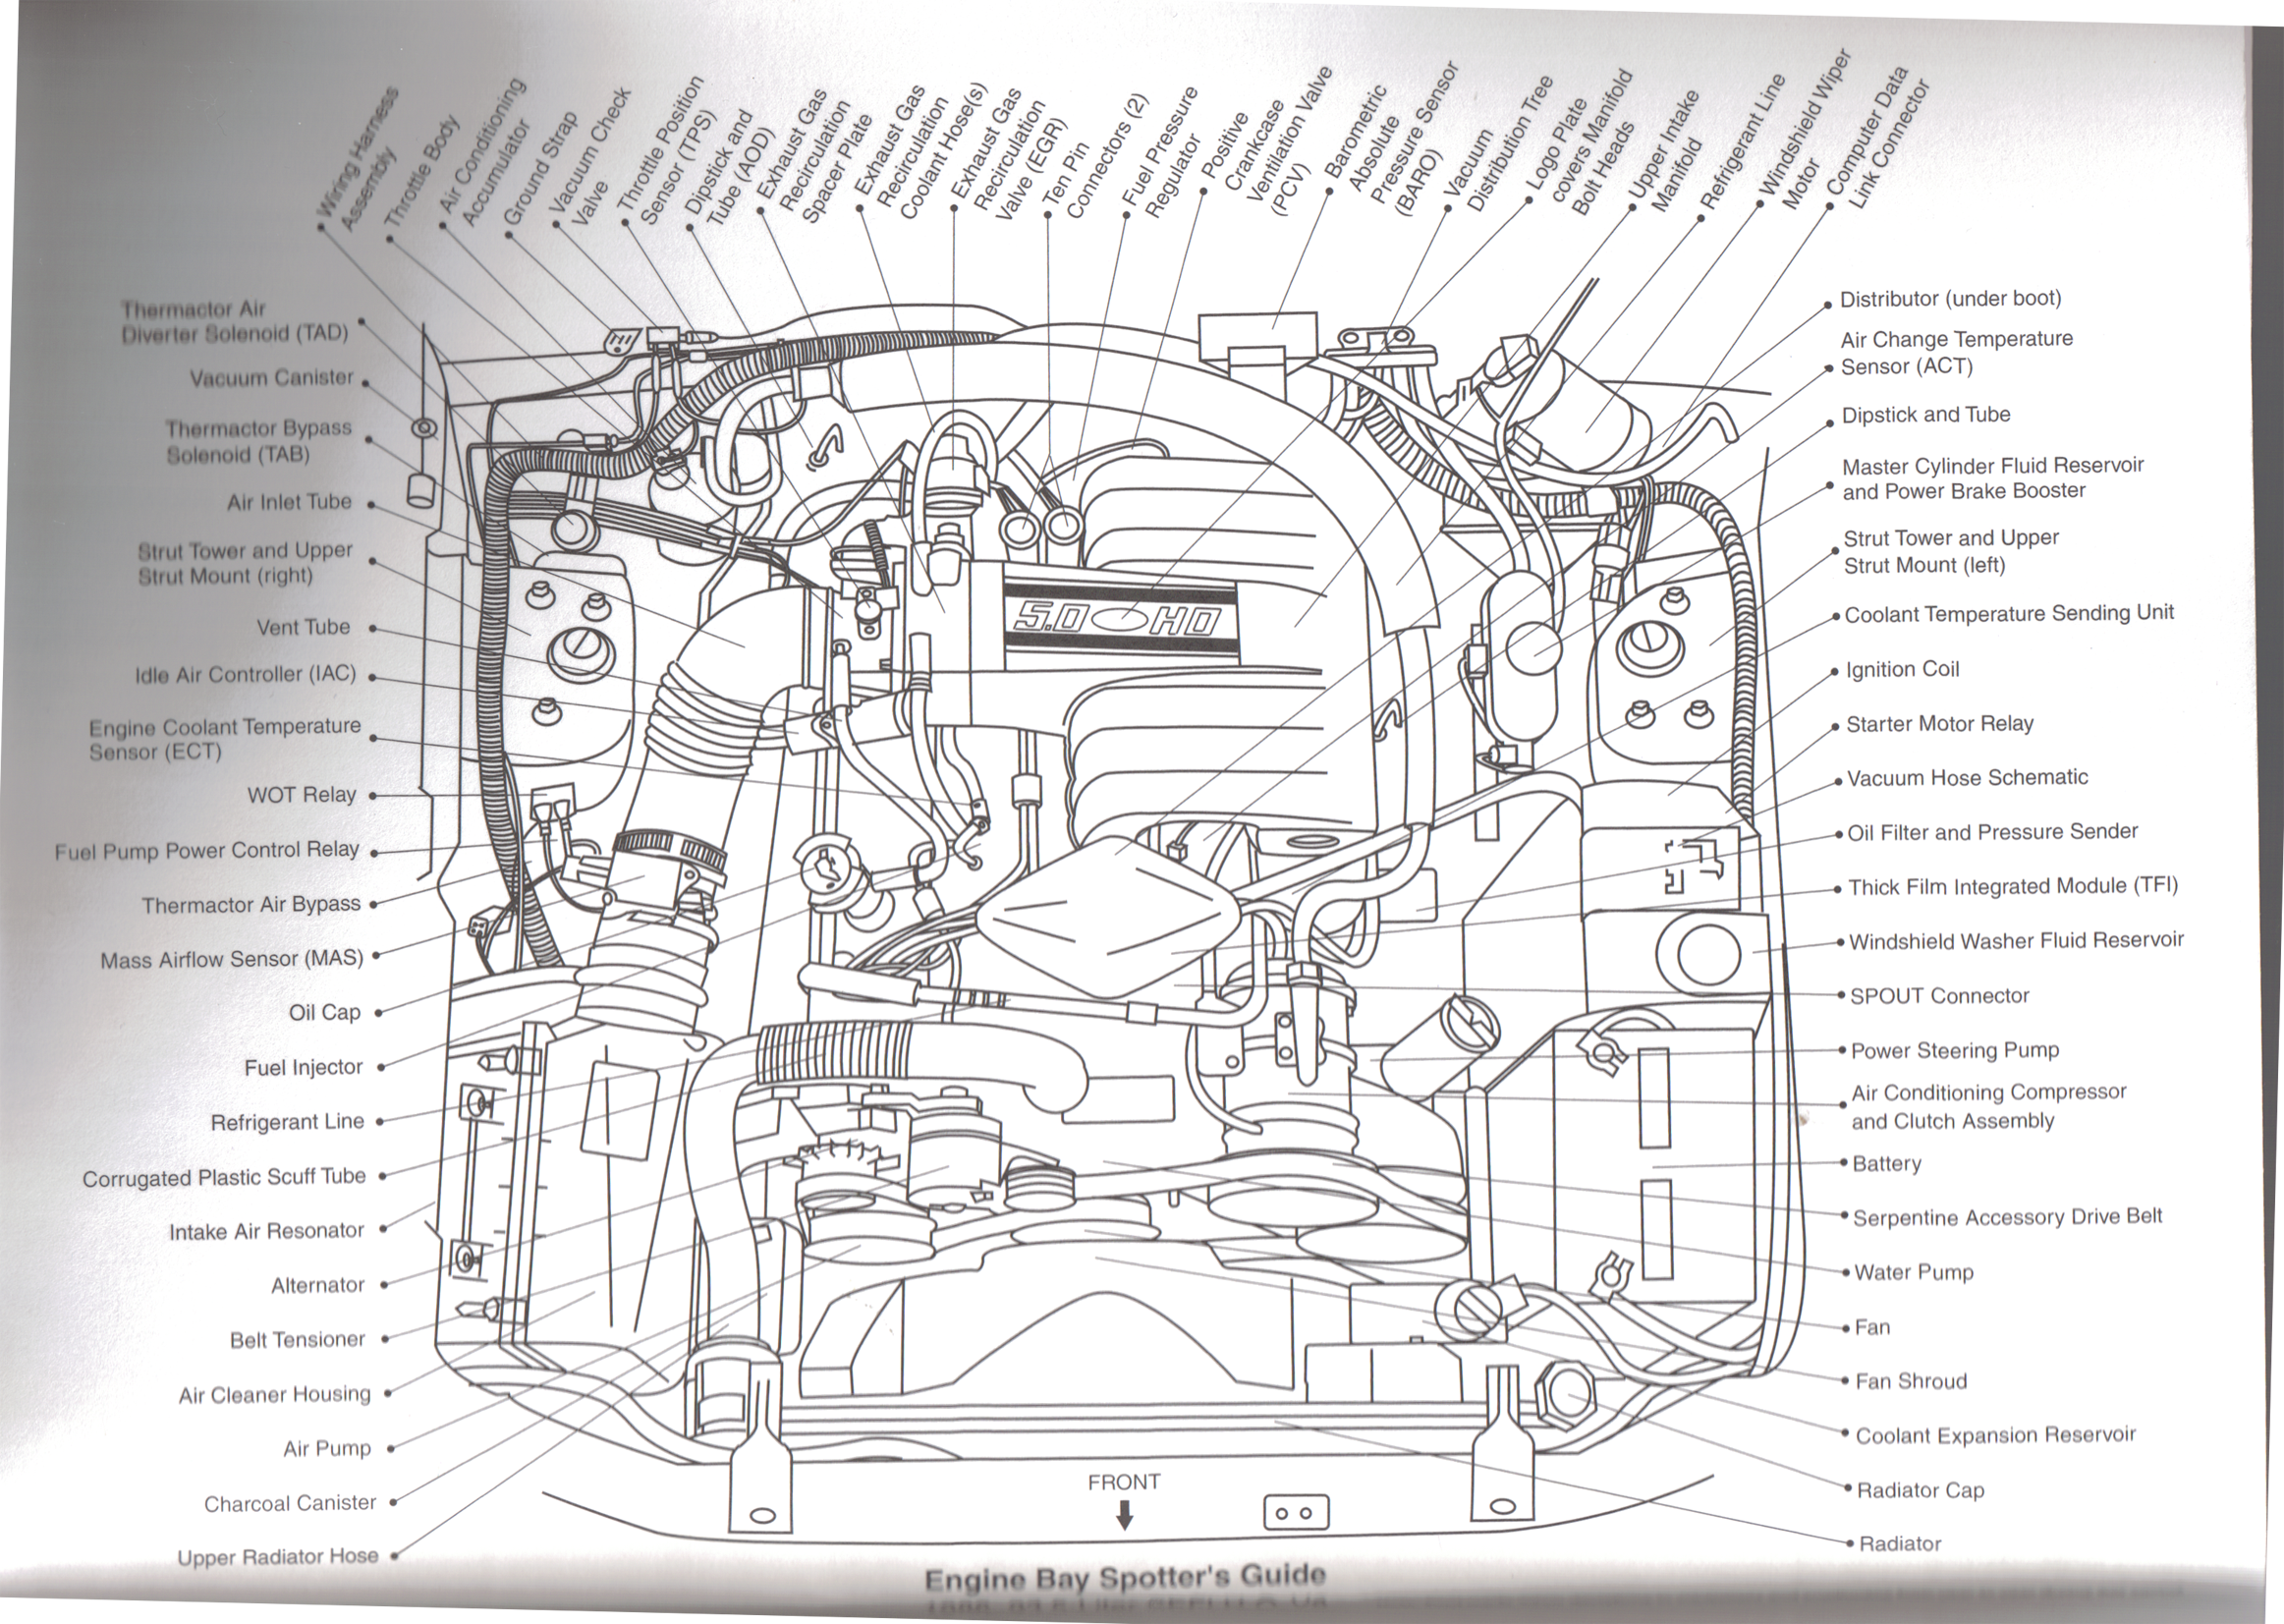 1986 Mustang Engine Diagram - wiring diagrams schematics